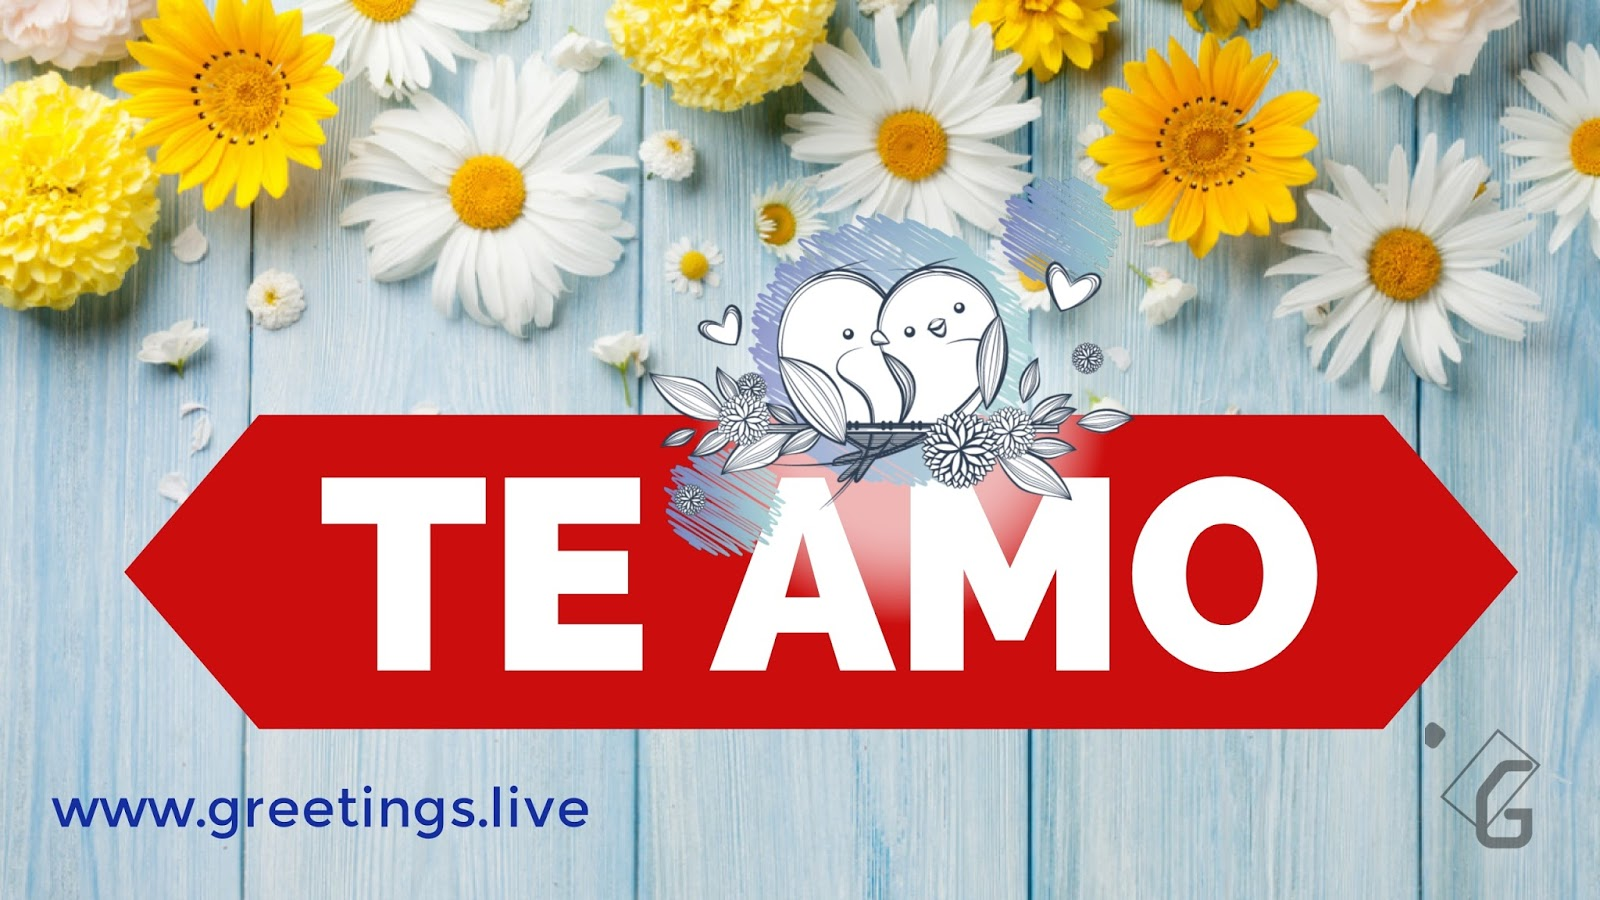 Te Amo Means I Love You In English Language   Greetings -8133